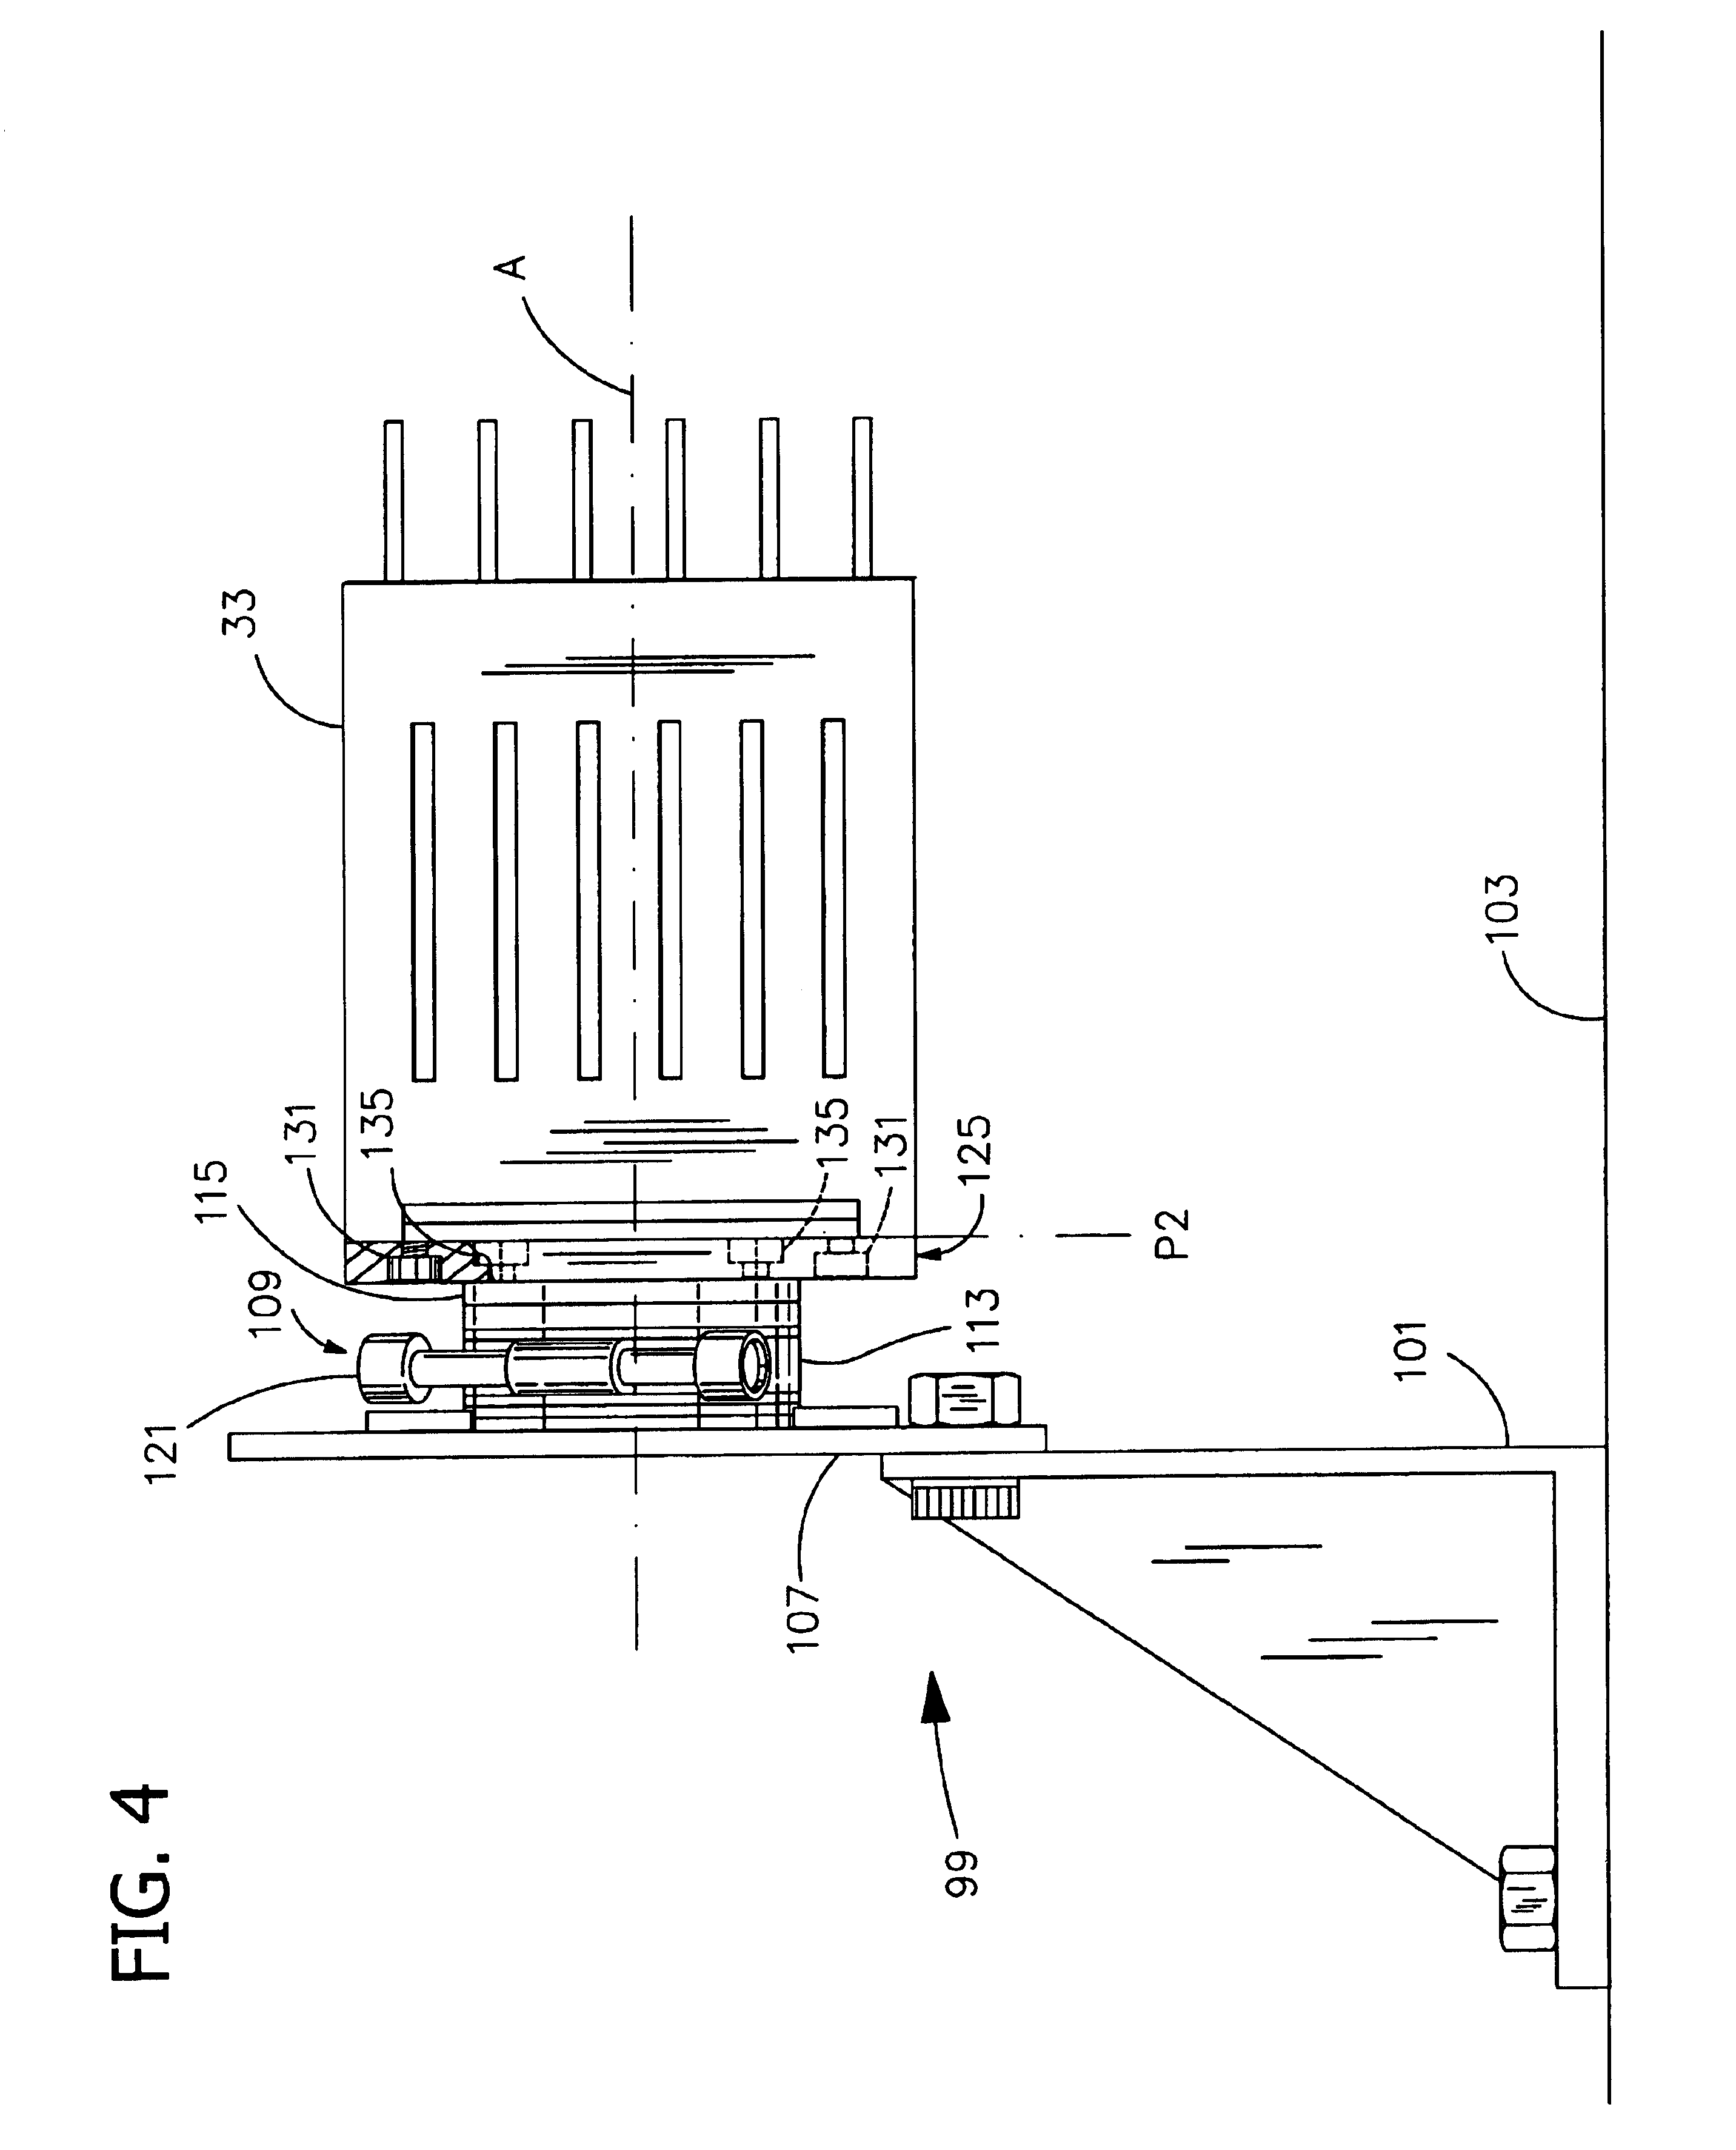 patent us6799629 - cooling apparatus for a multiplexed capillary electrophoresis system